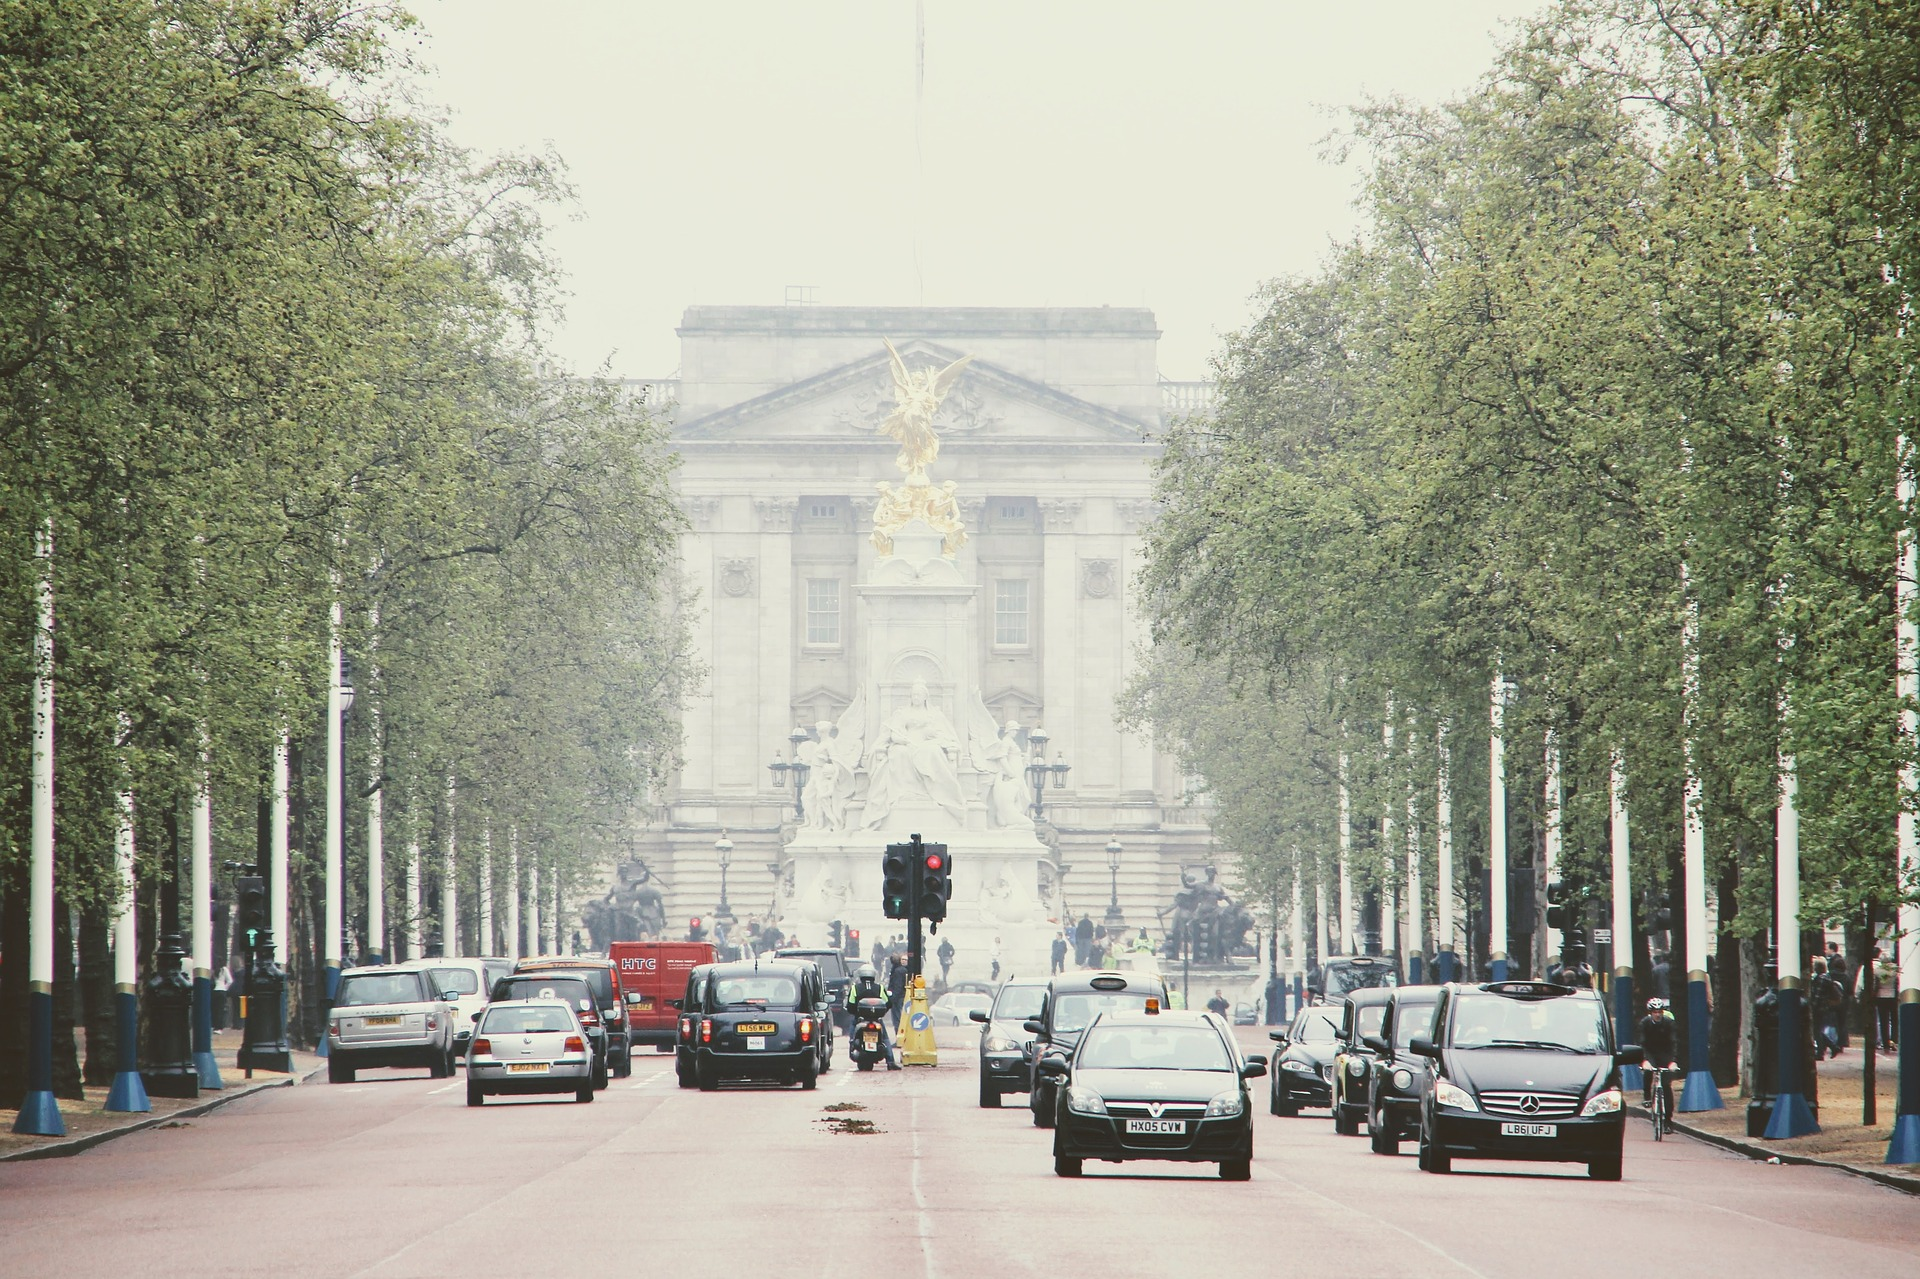 London introduces new emissions levy on older vehicles